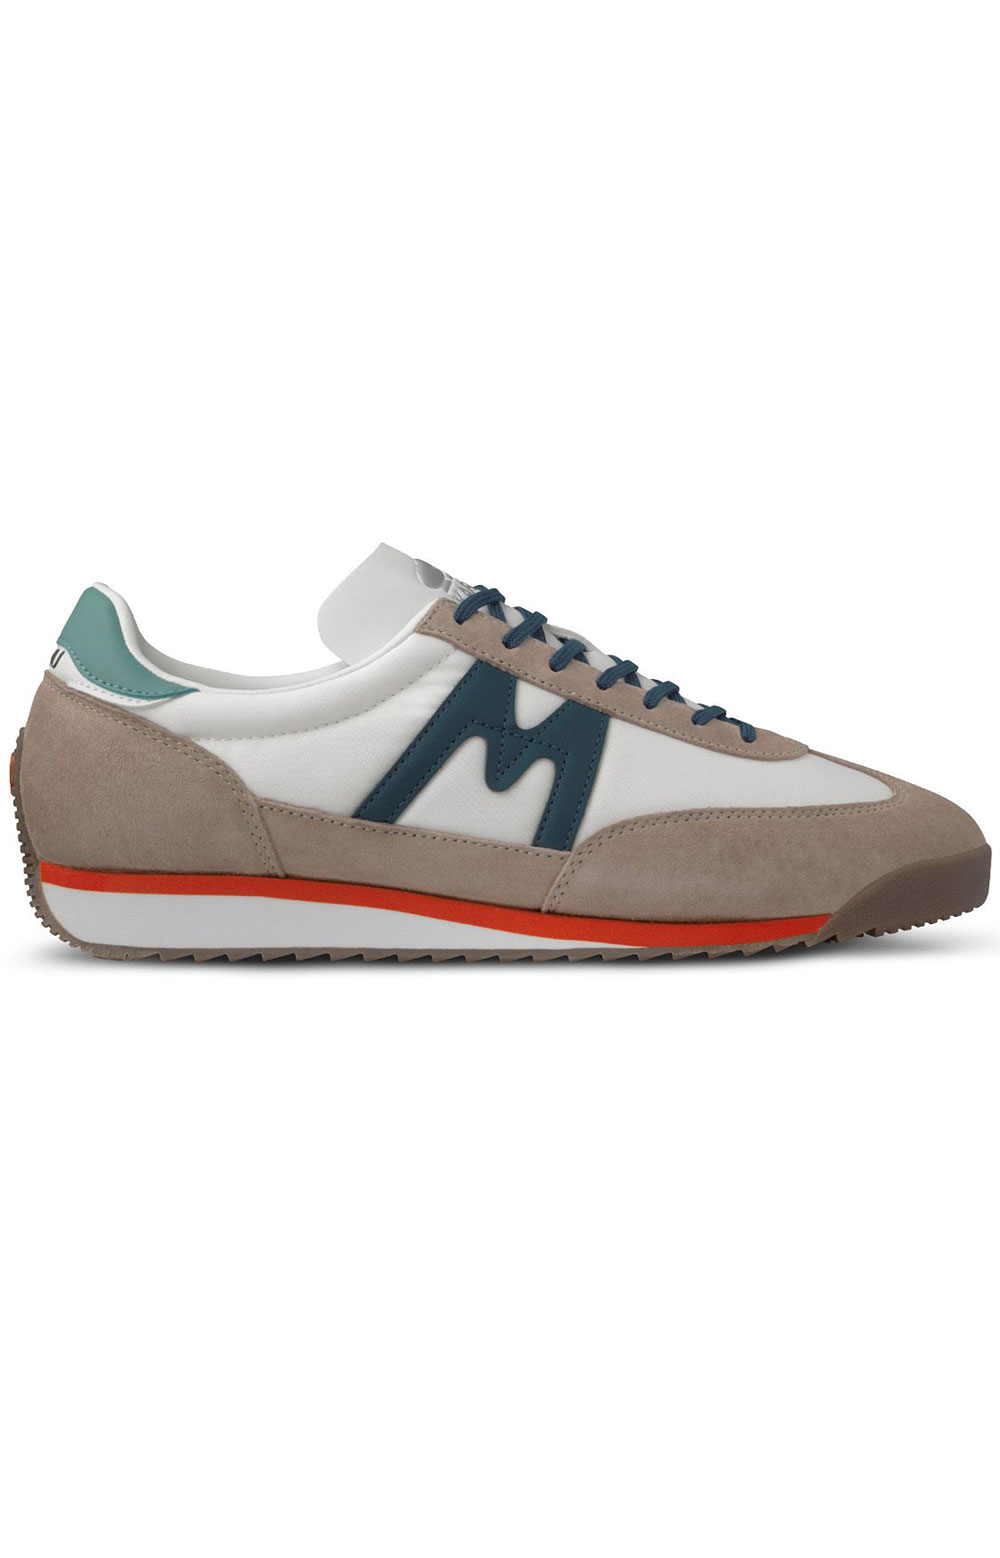 (F805032) Mestari Shoes - Peyote/Atlantic Deep